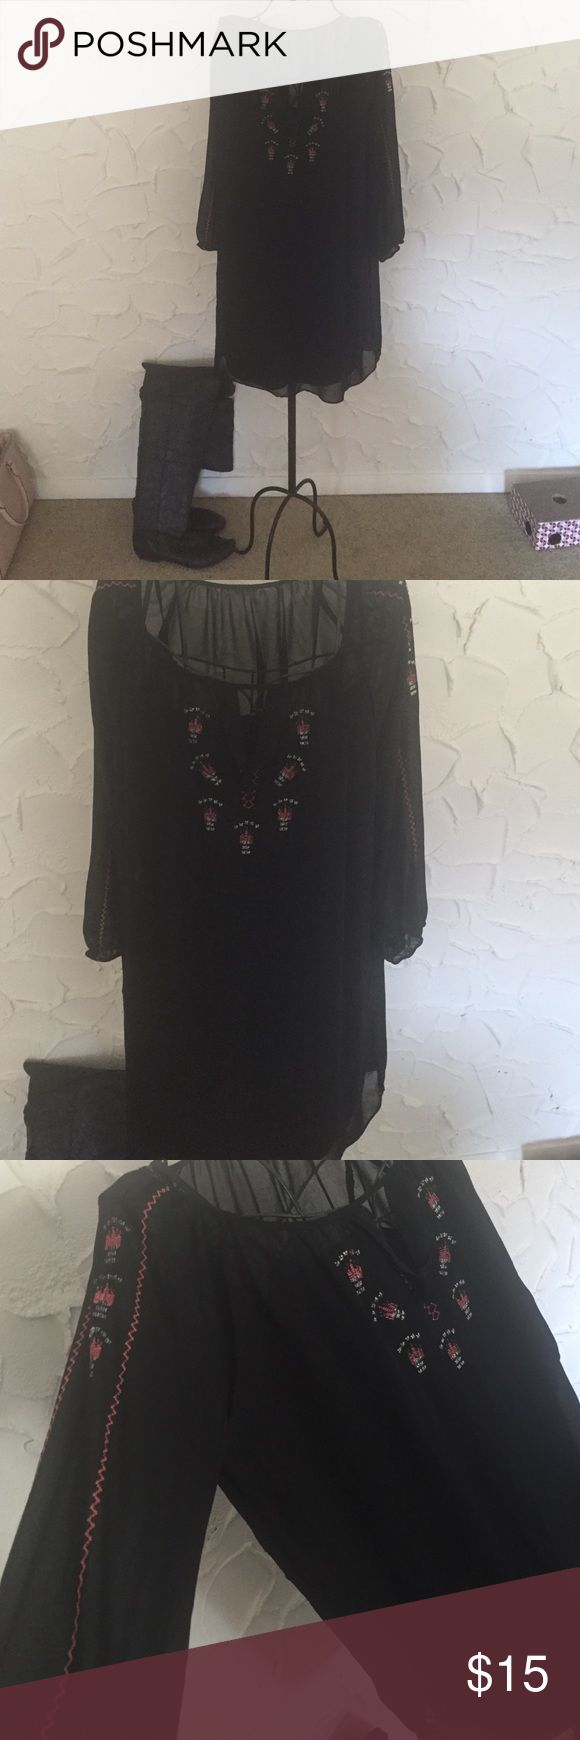 Boho Aztec dress Cute and comfortable dress! Worn a couple times, pairs really cute with tall boots (as shown in picture) boots not included! Great condition and the slip shown in the last picture is a separate piece but is included with the purchase  no trades or low balls please also I didn't see a tag for size but I'm assuming it's a medium because that what I normally wear Dresses Mini